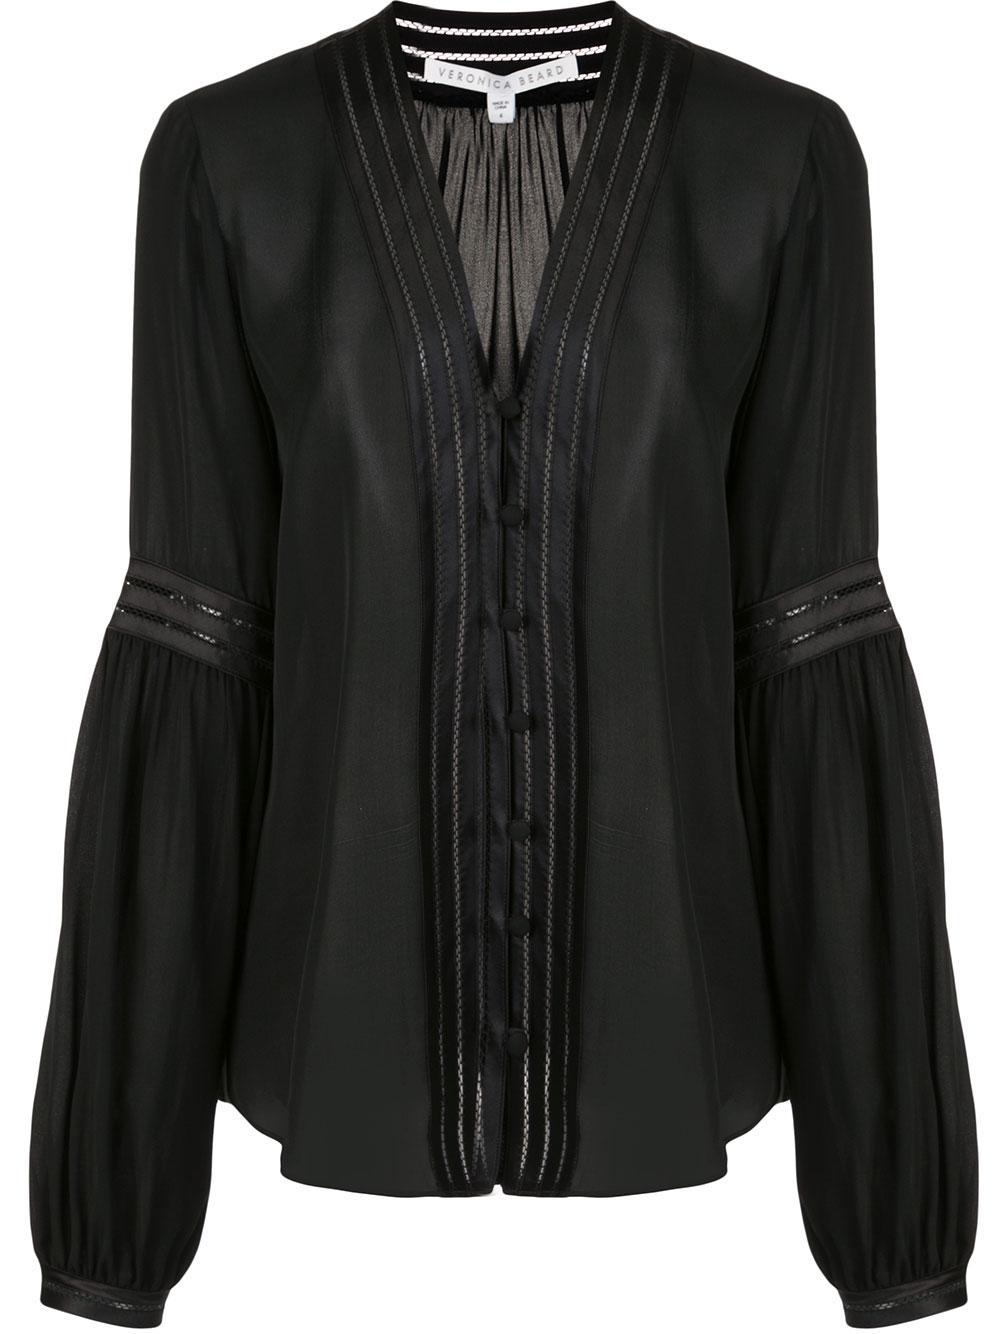 Yumi Long Sleeve Button Up V- Neck Blouse Item # 1911GGT114794